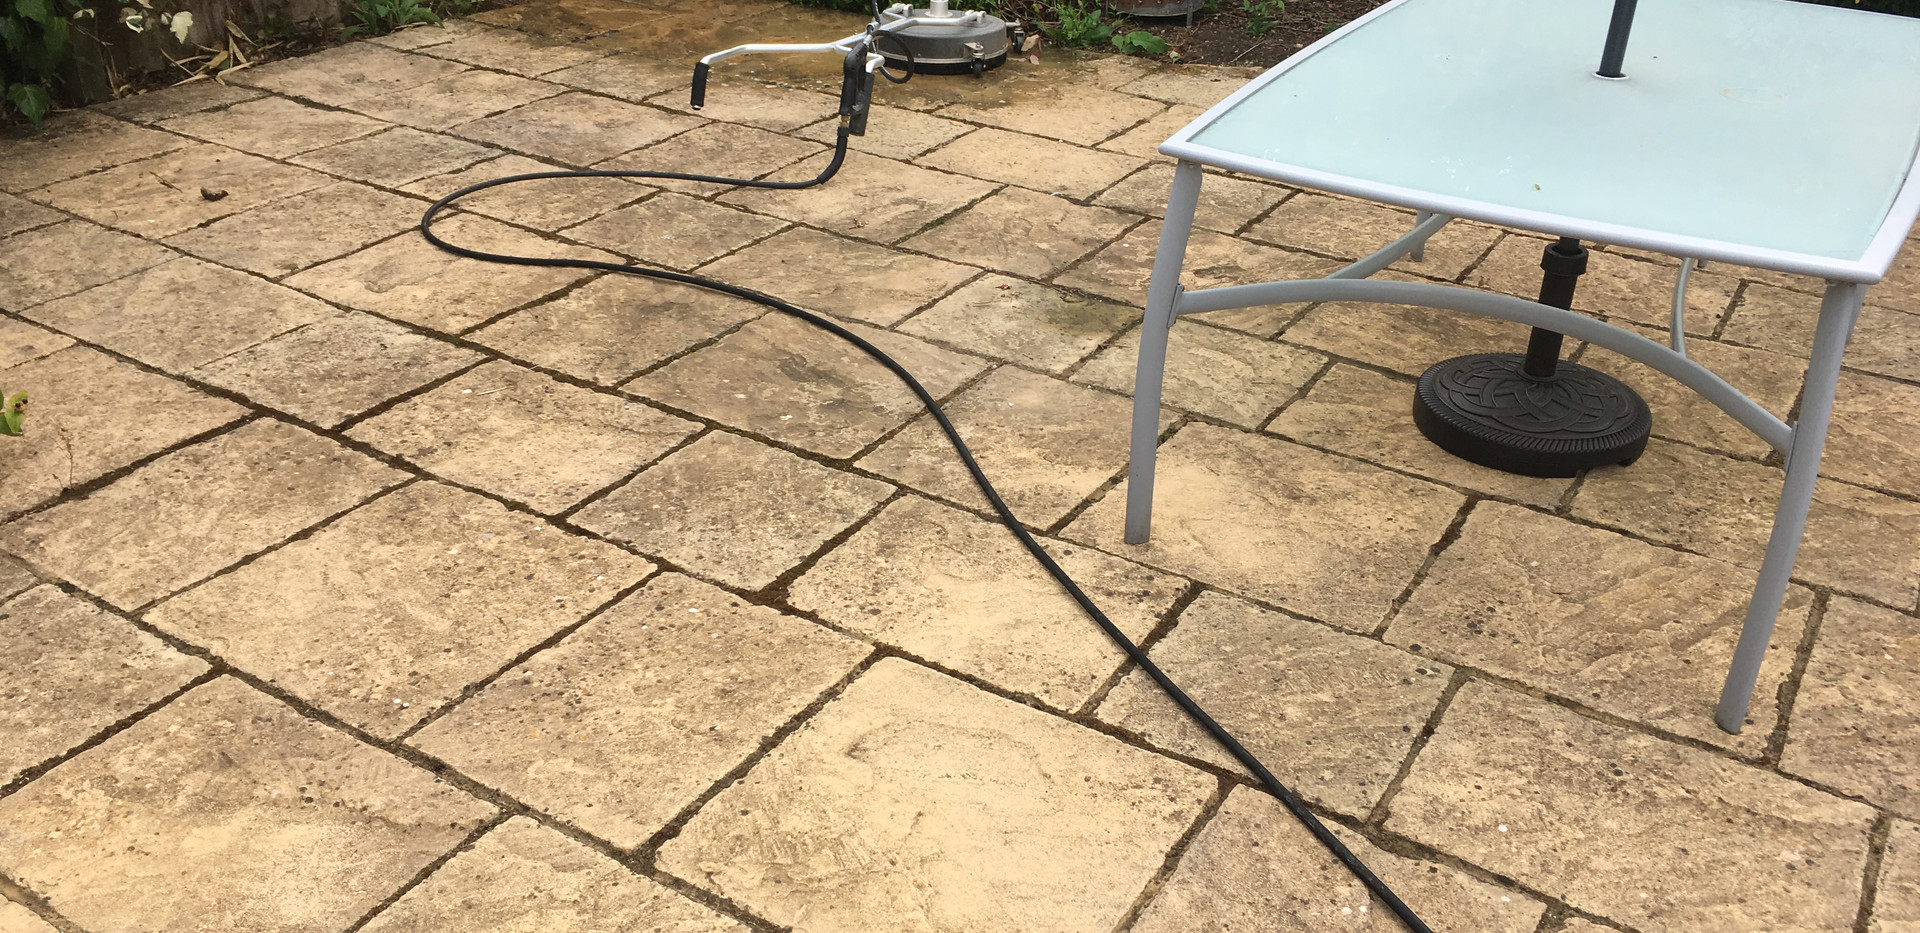 Patio cleaning Lichen removal